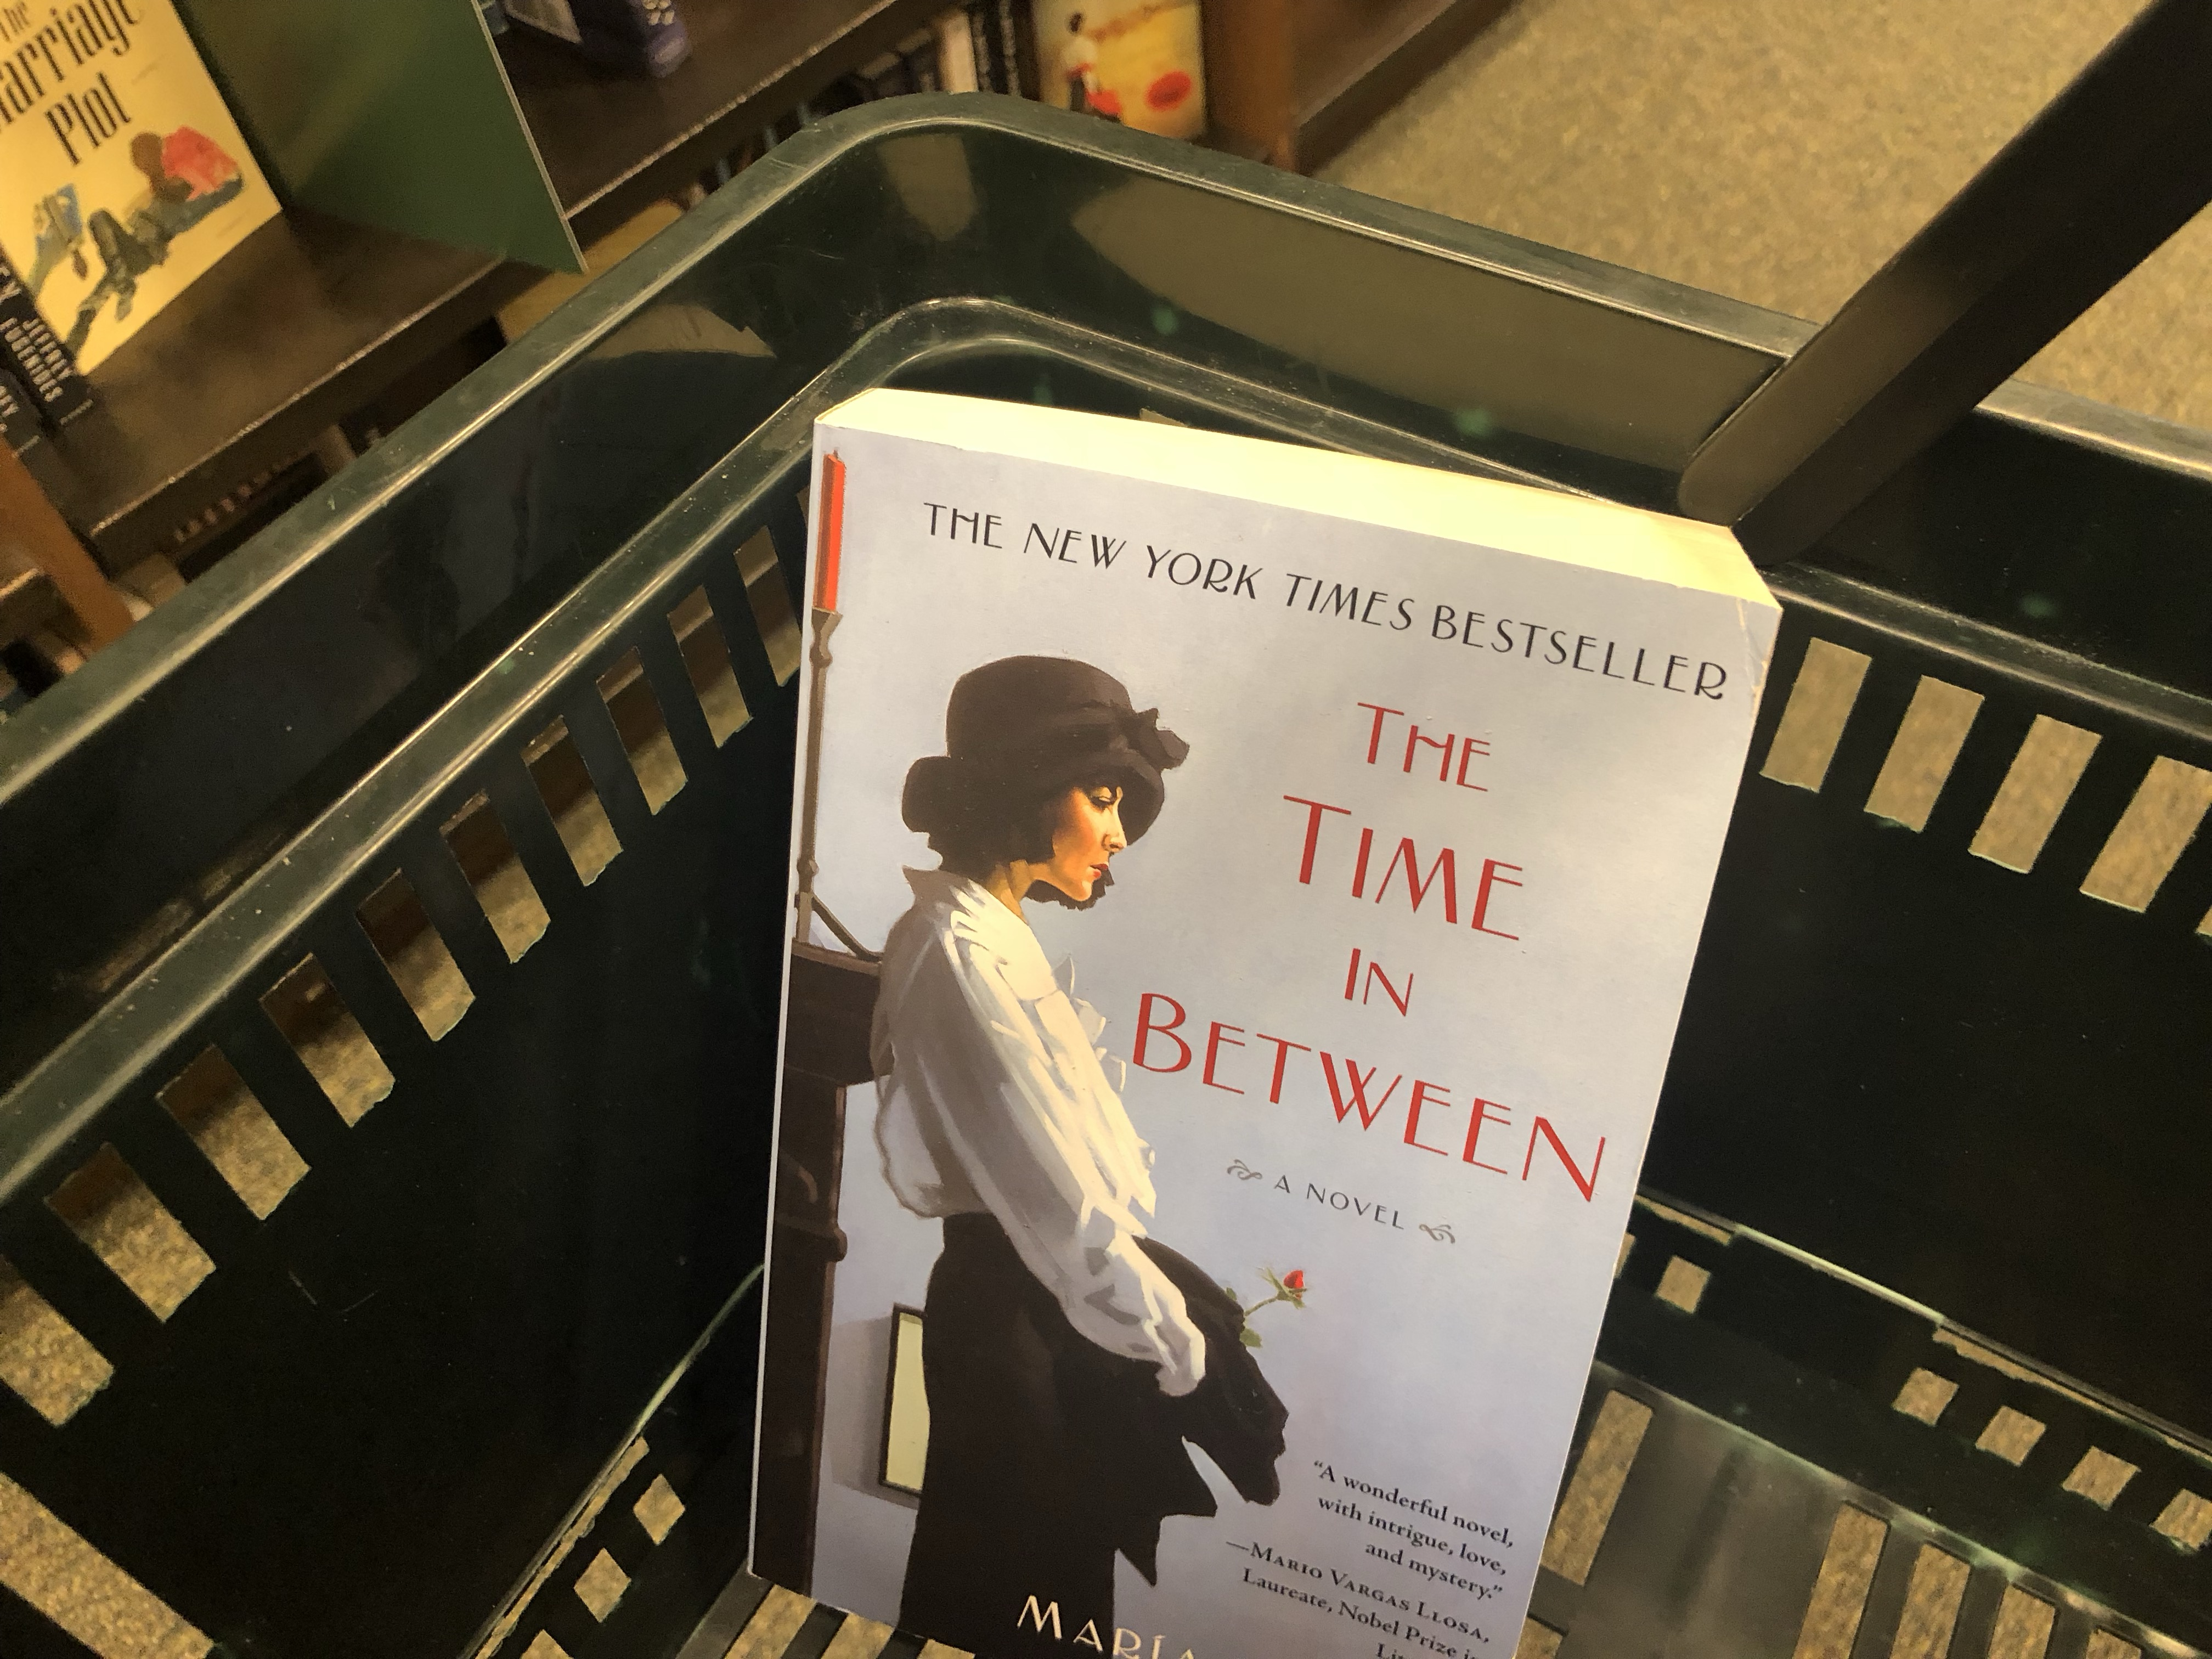 best novels, cookbook, and other books our team loves — The Time in Between book